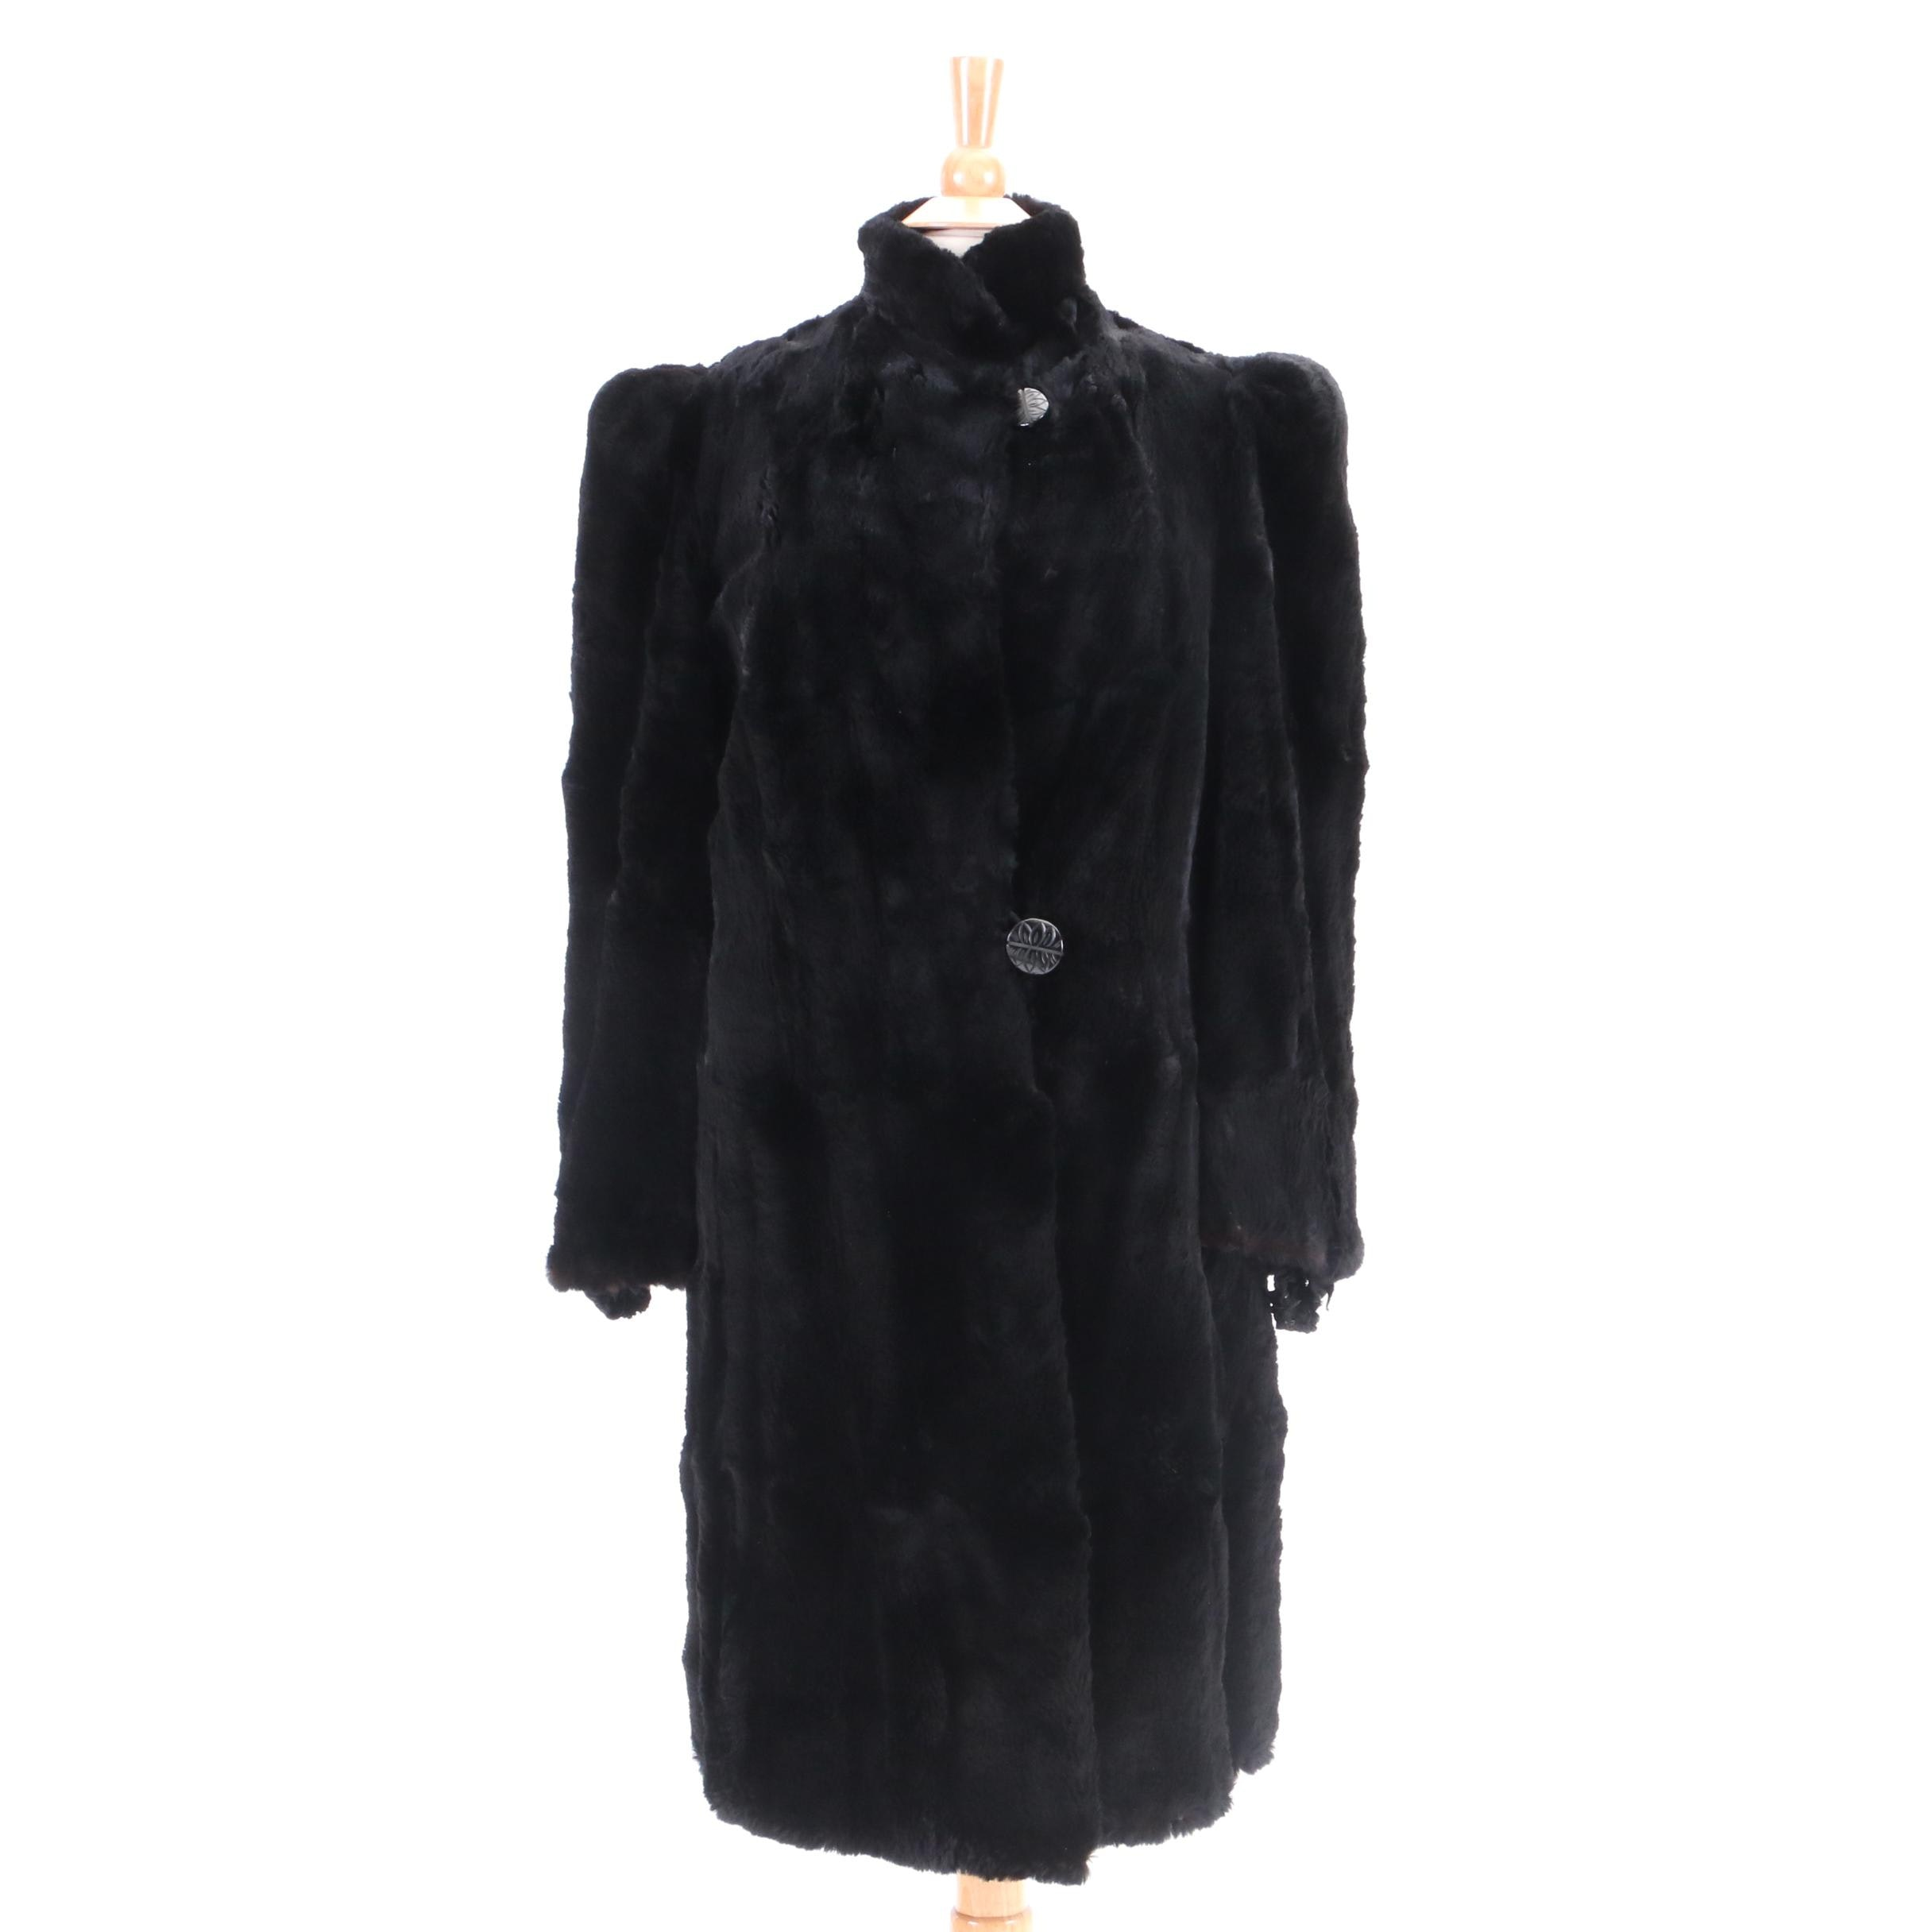 Circa 1940s Vintage Stern's Seal Dyed Rabbit Fur Coat